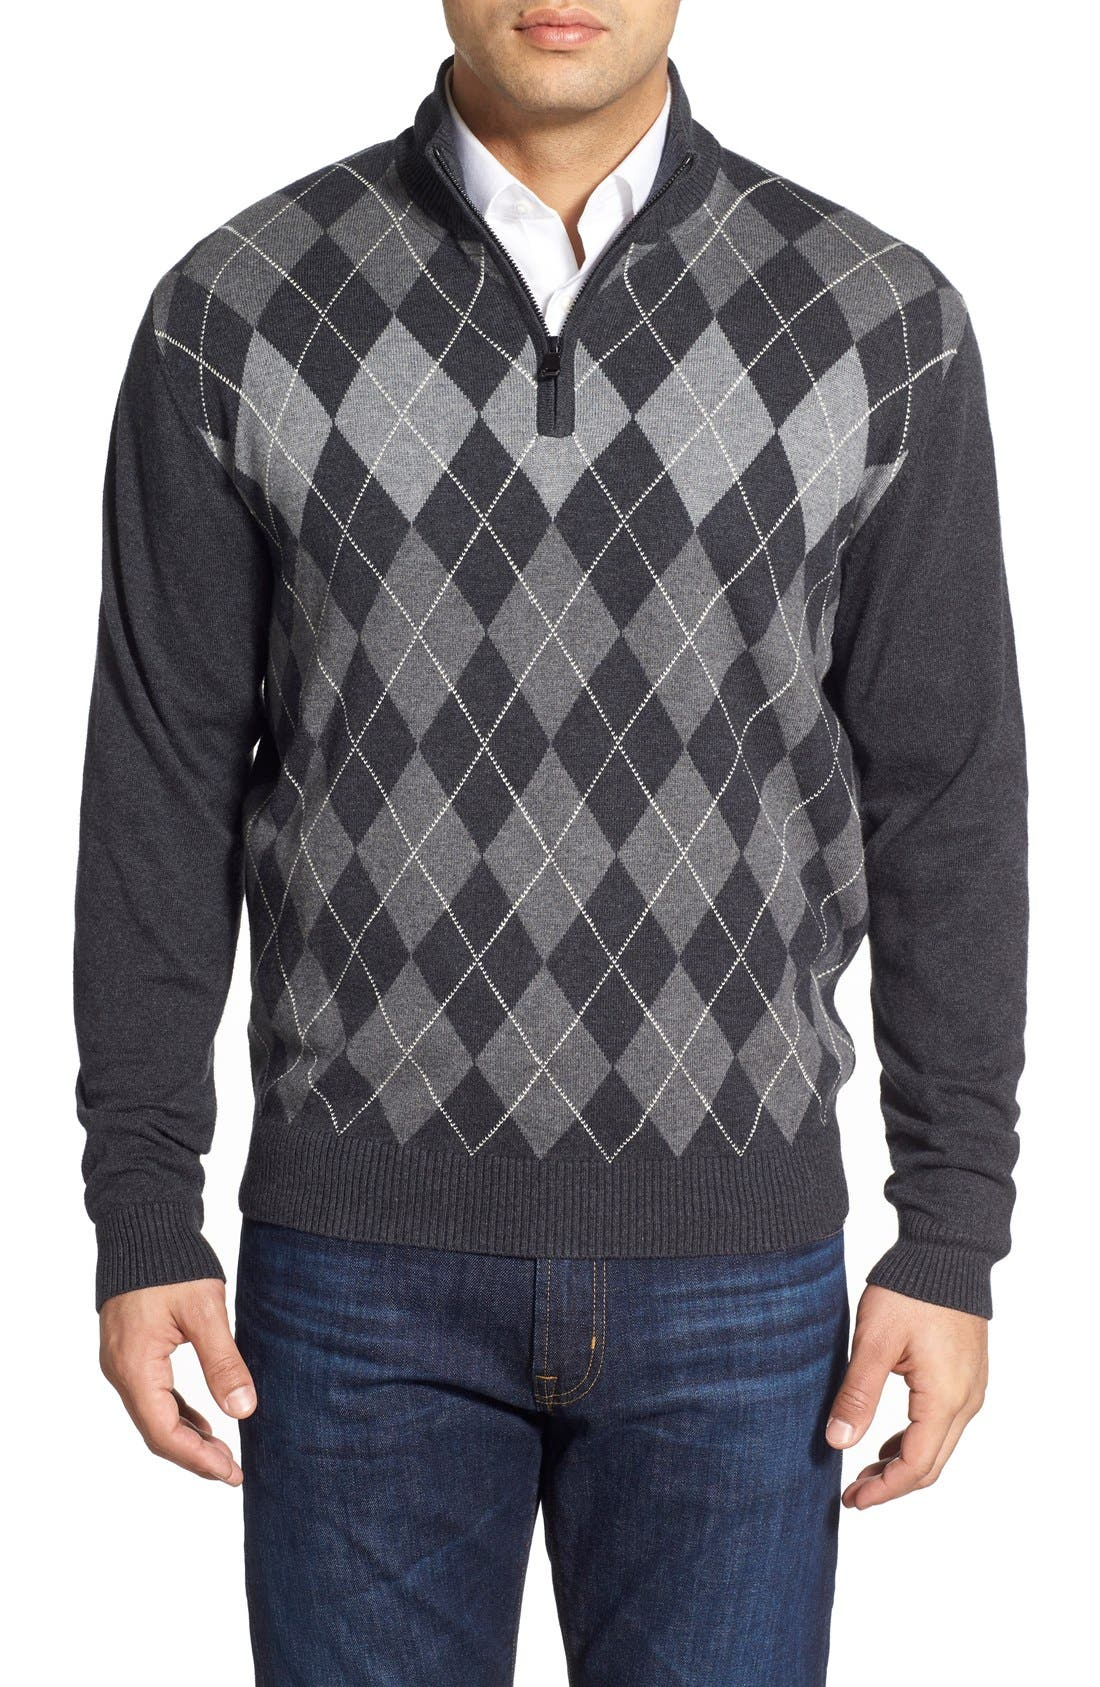 Cutter & Buck 'Blackcomb' Quarter Zip Argyle Knit Pullover